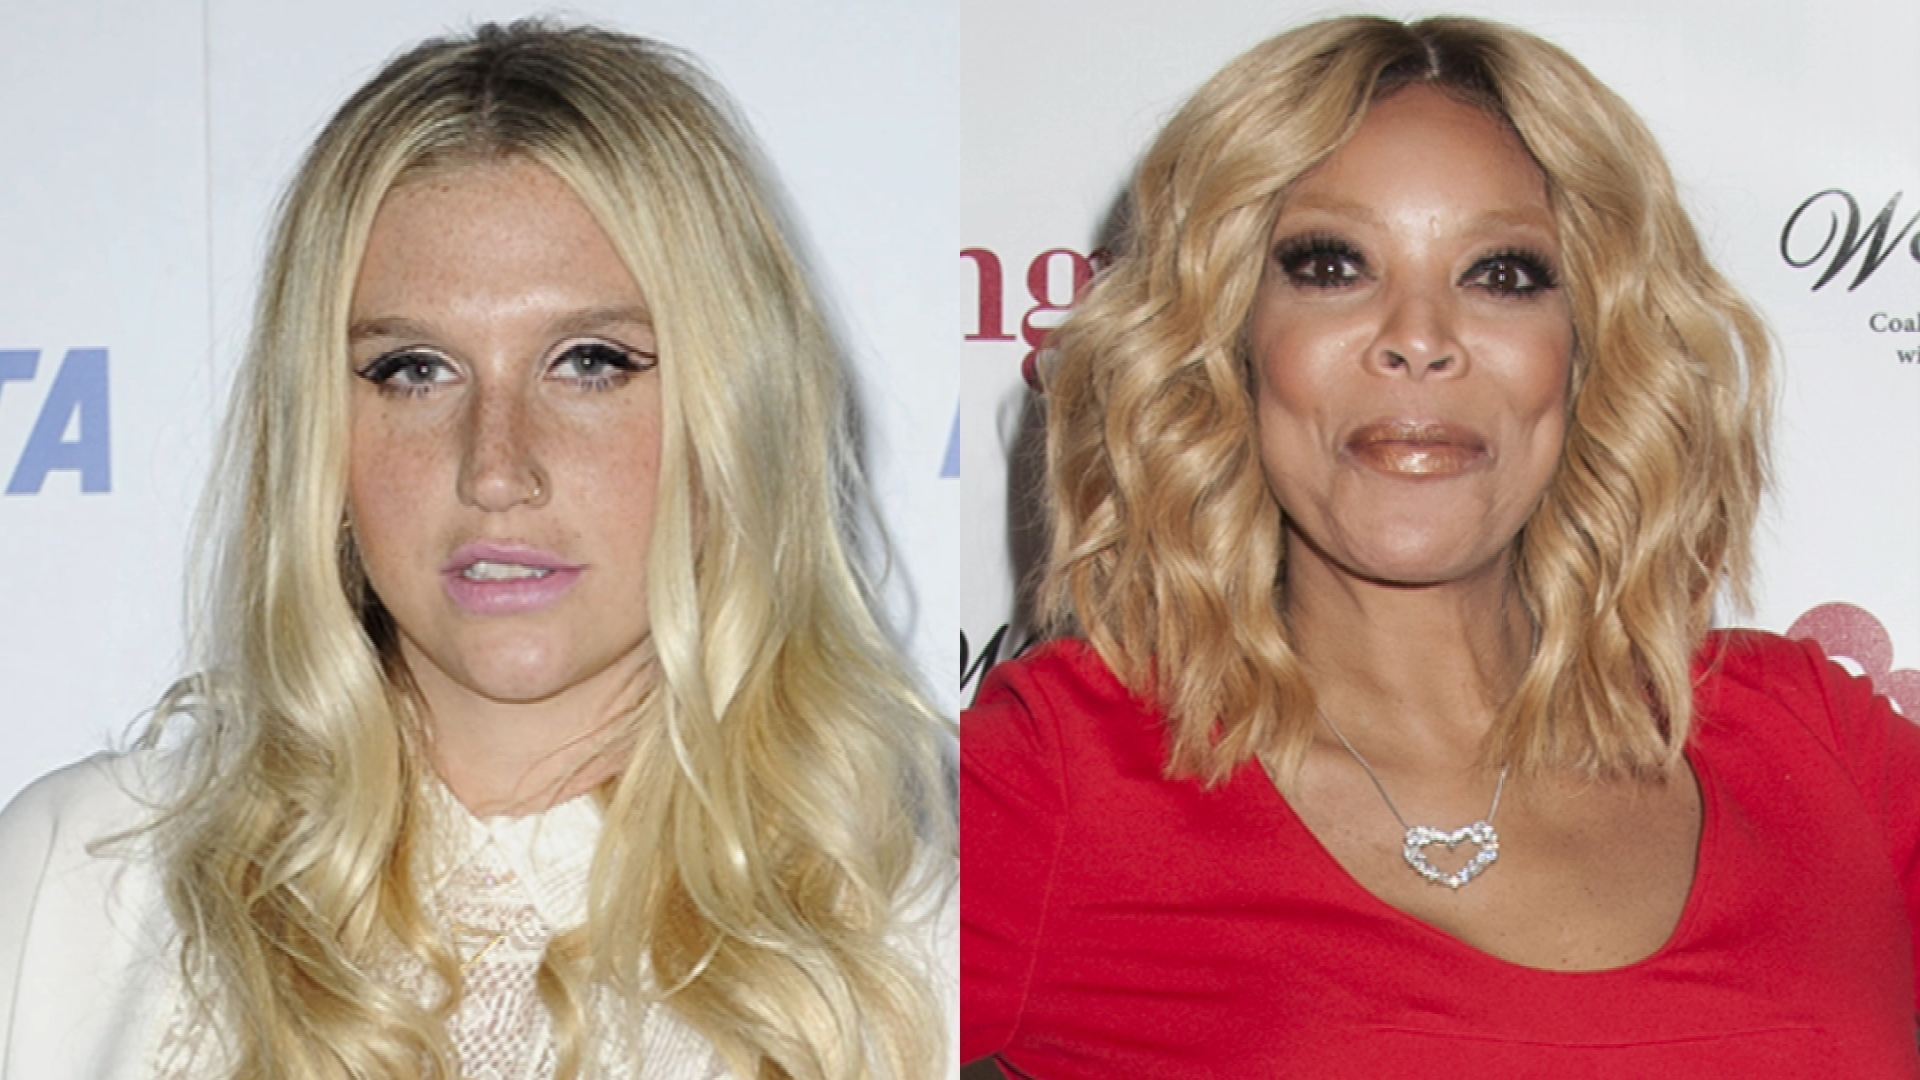 Wendy Williams Apologizes to Kesha